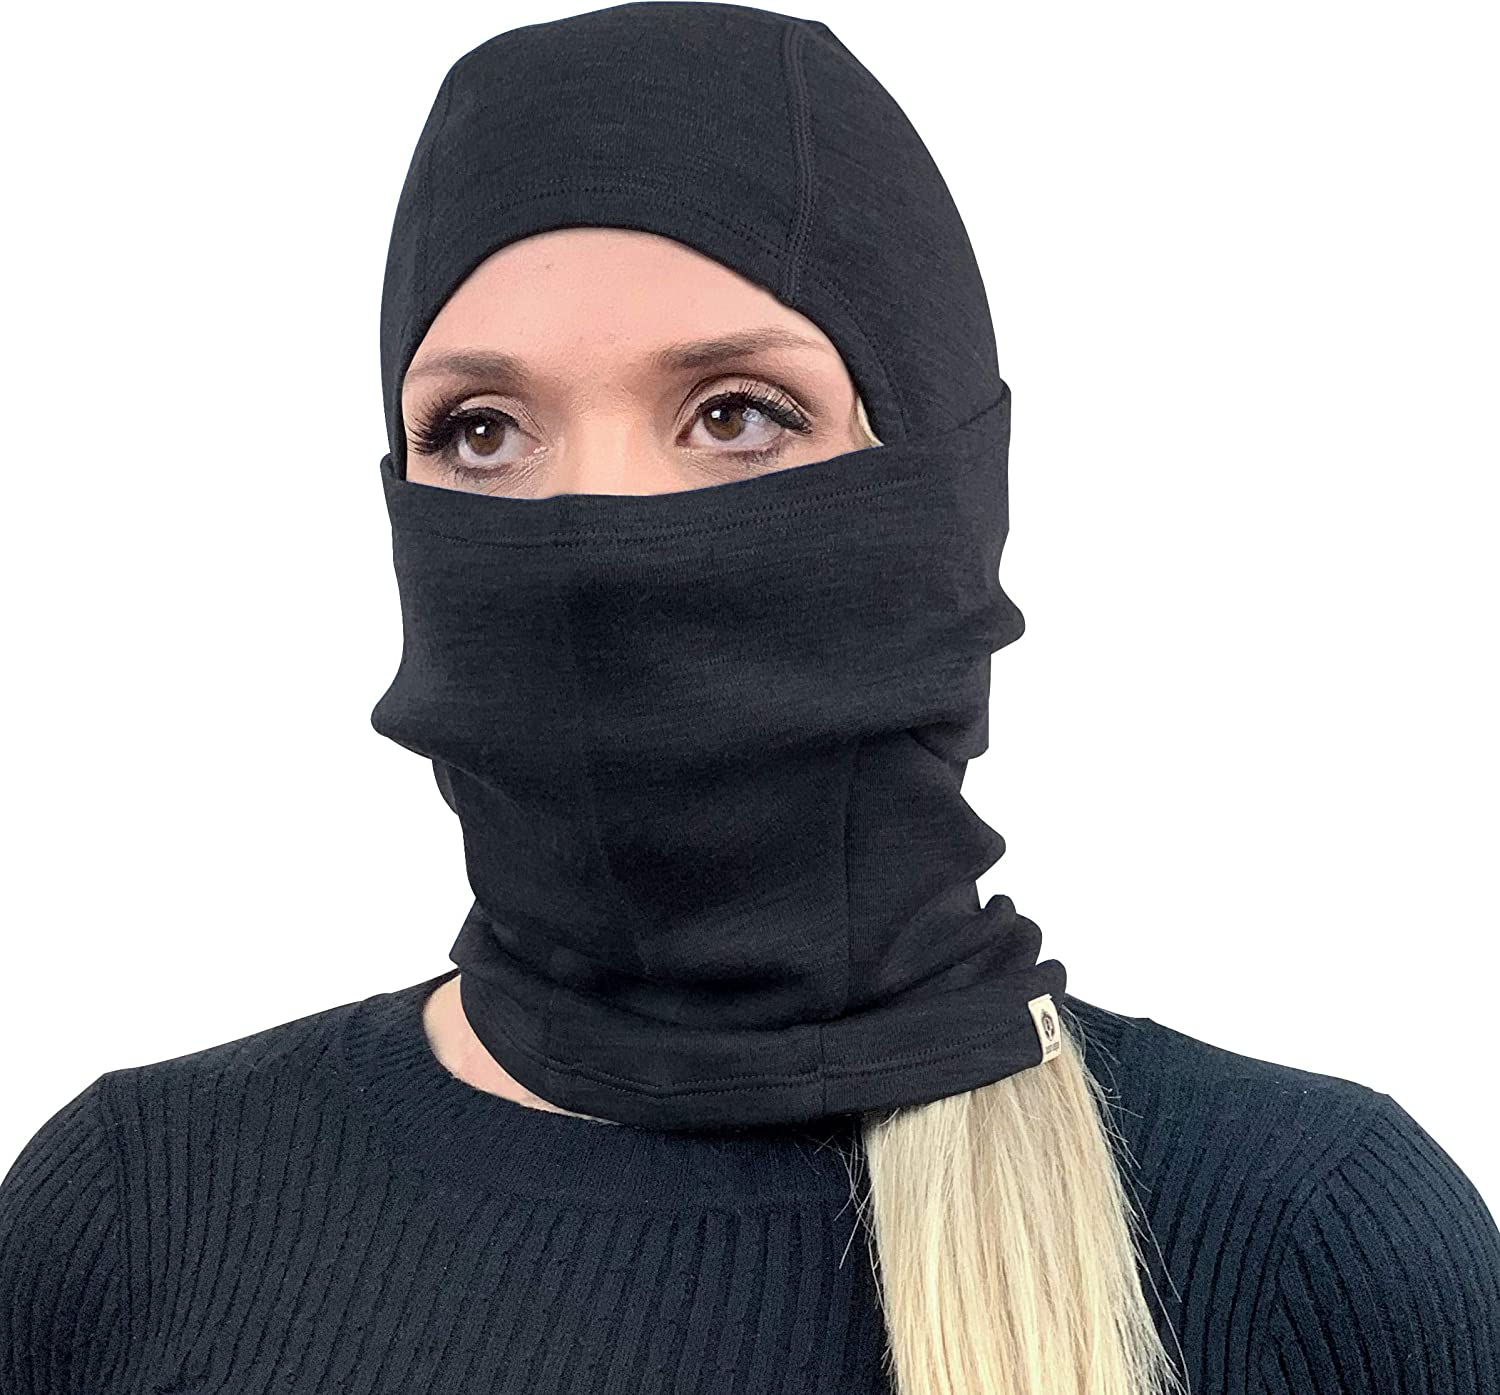 Bush Edge 100% Merino Wool Balaclava